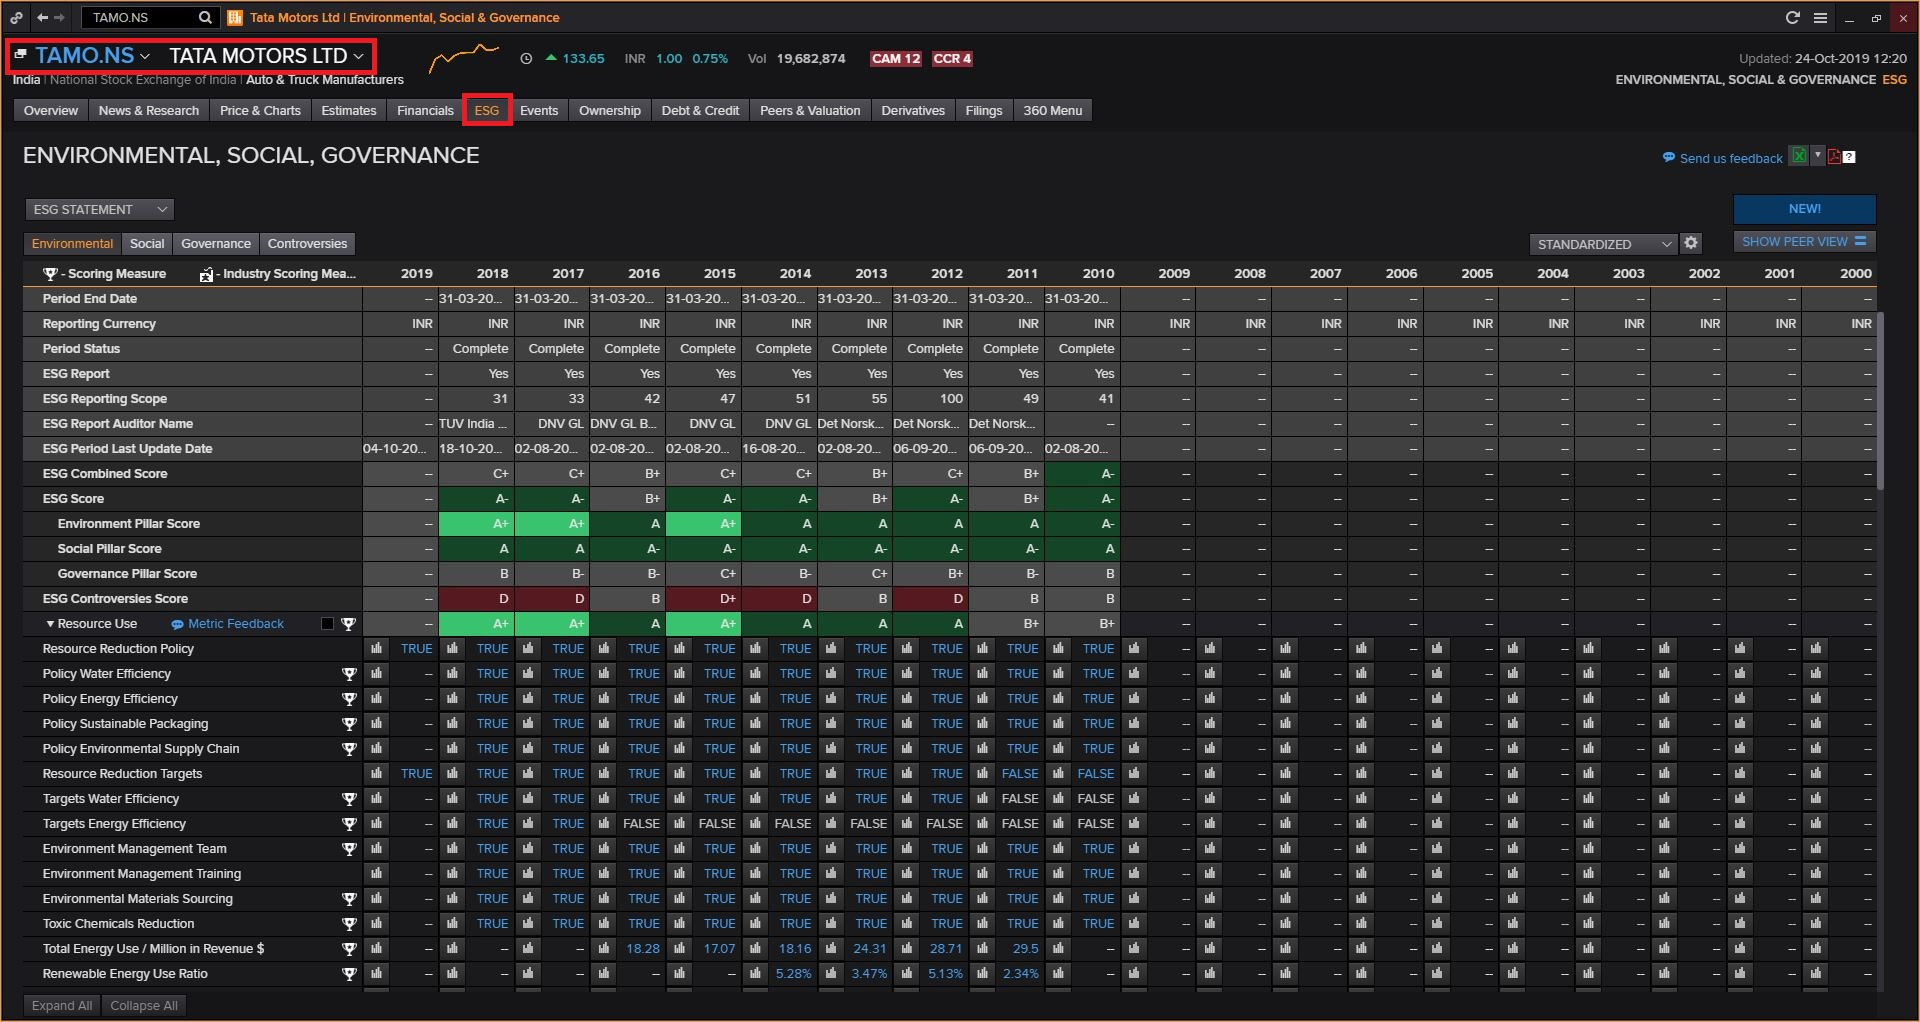 Login to Thomson Reuters Eikon (Available Only in Library) Then Search for a Company and Click on ESG